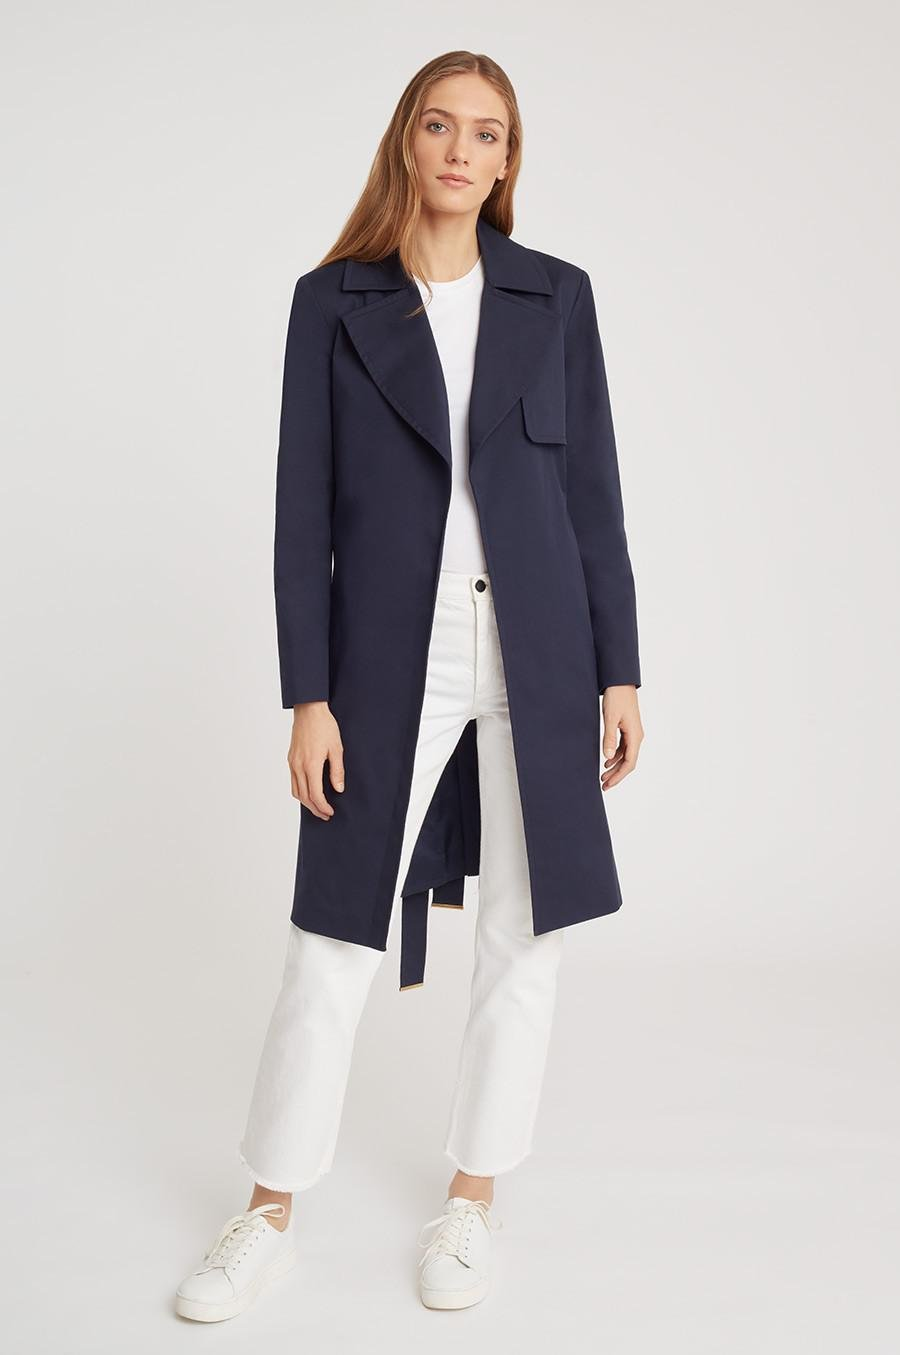 Women's Classic Trench in Navy | Size: 3